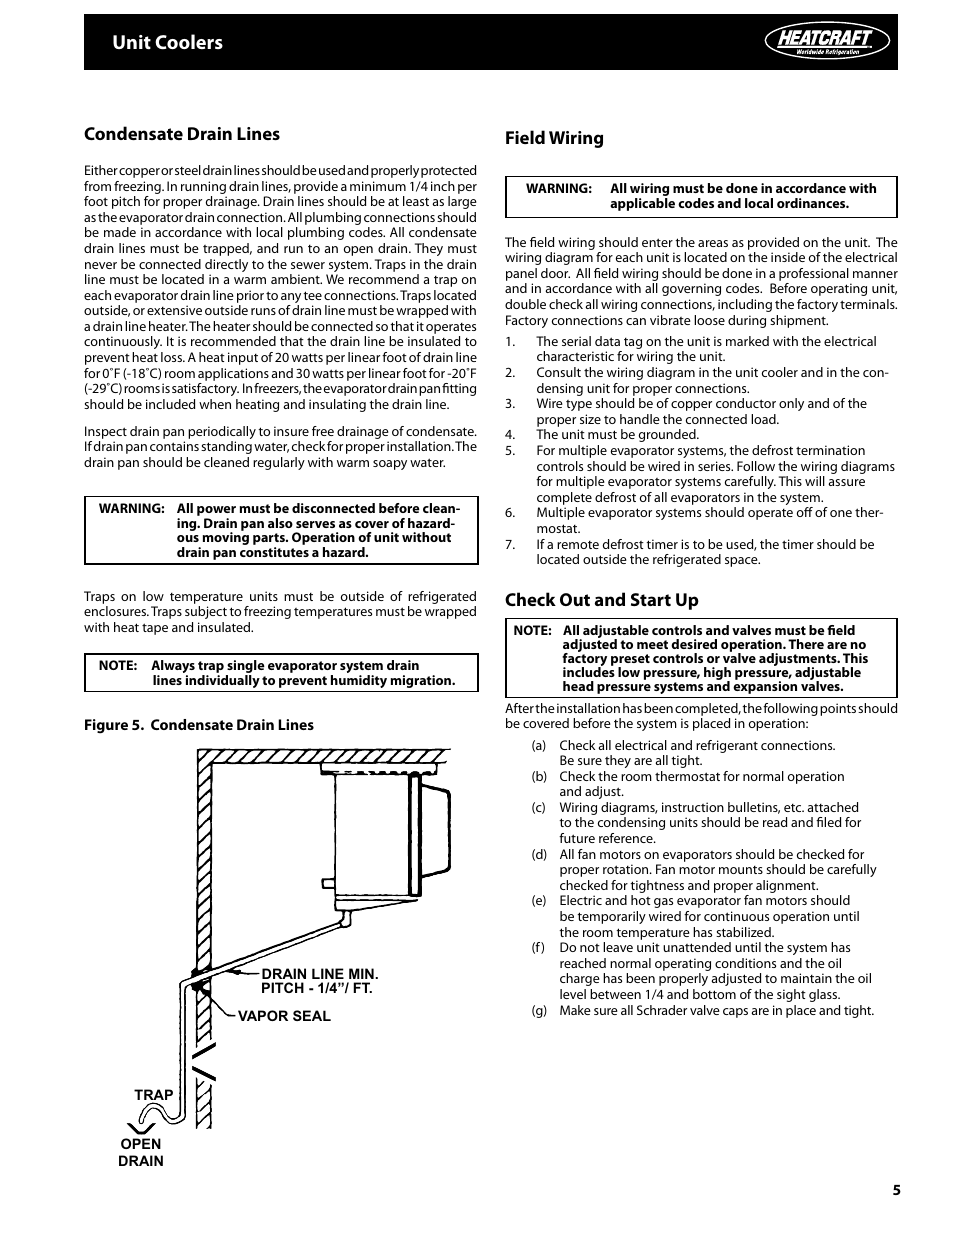 Unit coolers, Condensate drain lines, Field wiring | Heatcraft Refrigeration  Products Unit Coolers H-IM-UC User Manual | Page 5 / 8